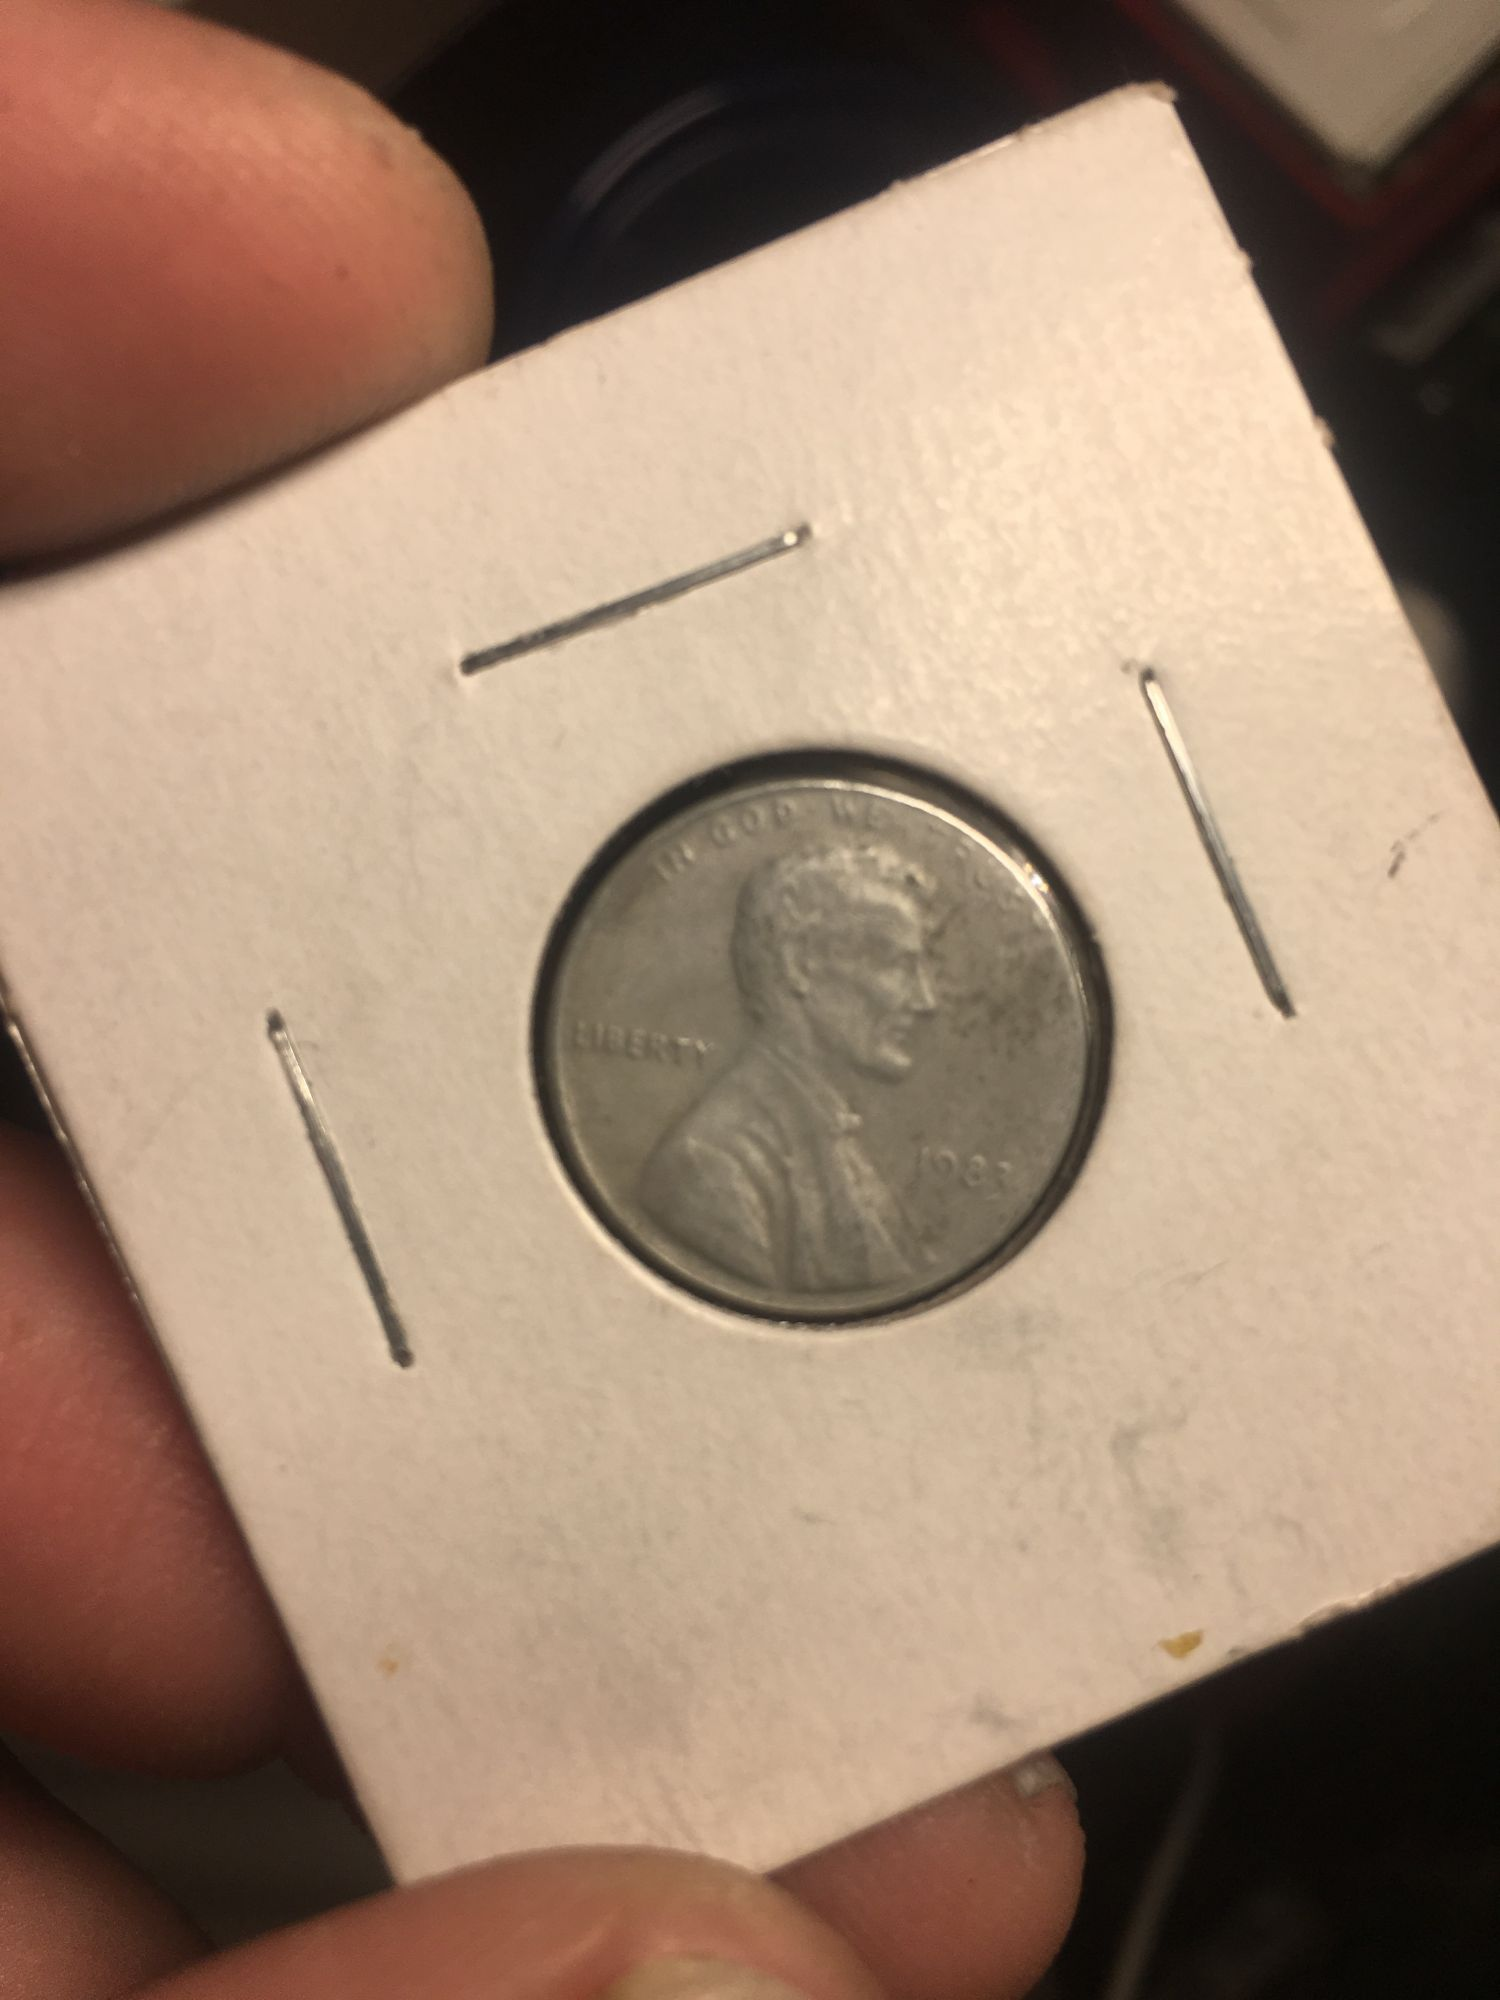 Is this 1983 penny worth submitting? - Newbie Coin